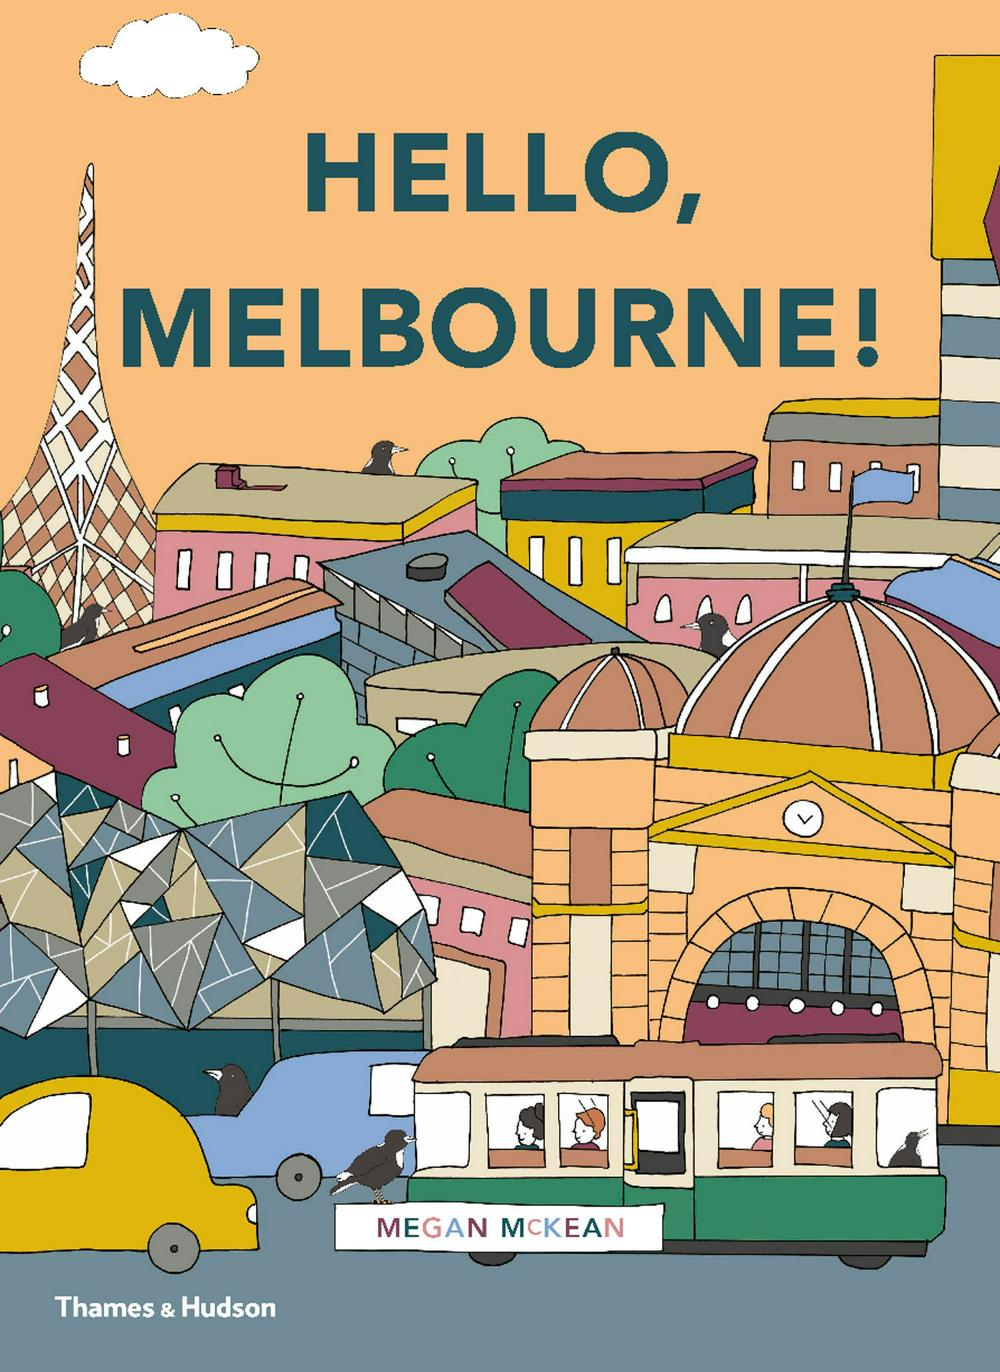 Hello, Melbourne! by Megan Mckean, ISBN: 9780500501085